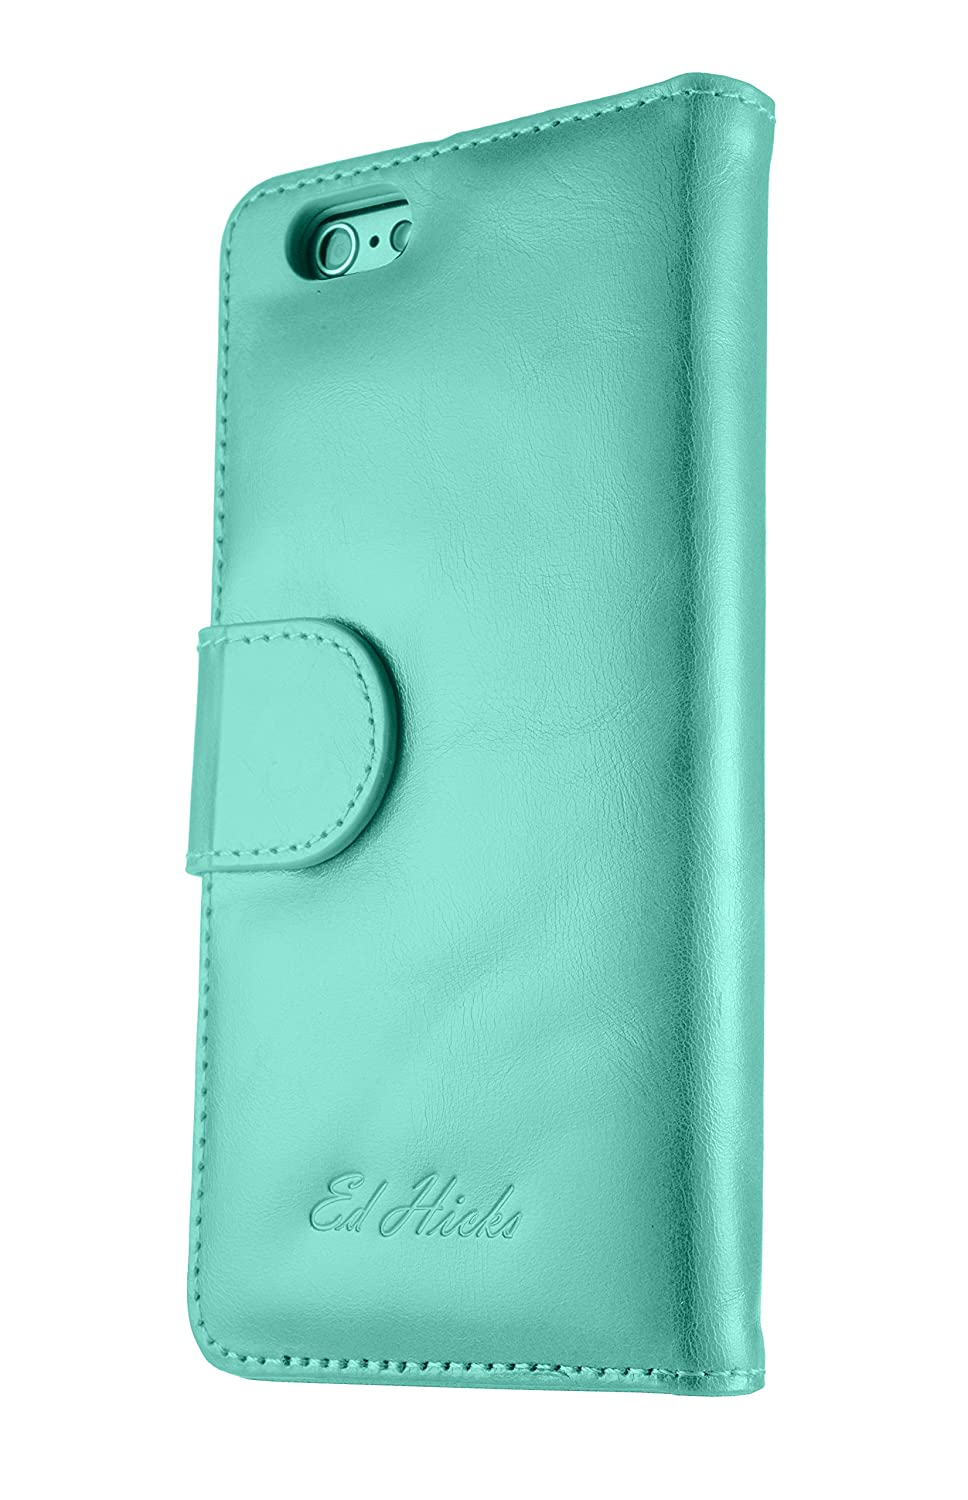 Pink with Black Details Ed Hicks Womens Leather Wallet Case for iPhone 6 6S